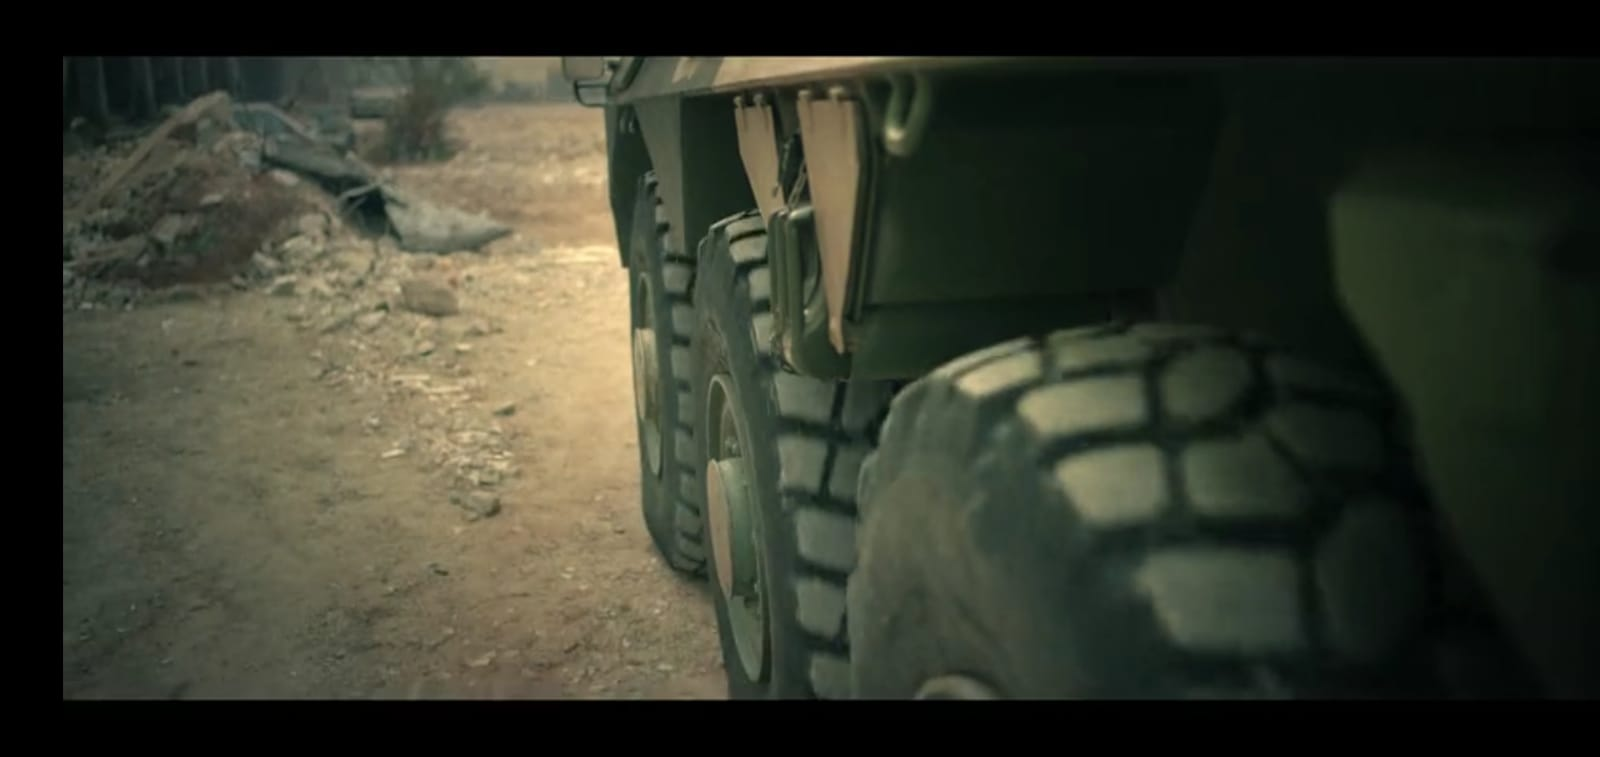 Les FAR et le Cinema / Moroccan Armed Forces in Movies - Page 11 211